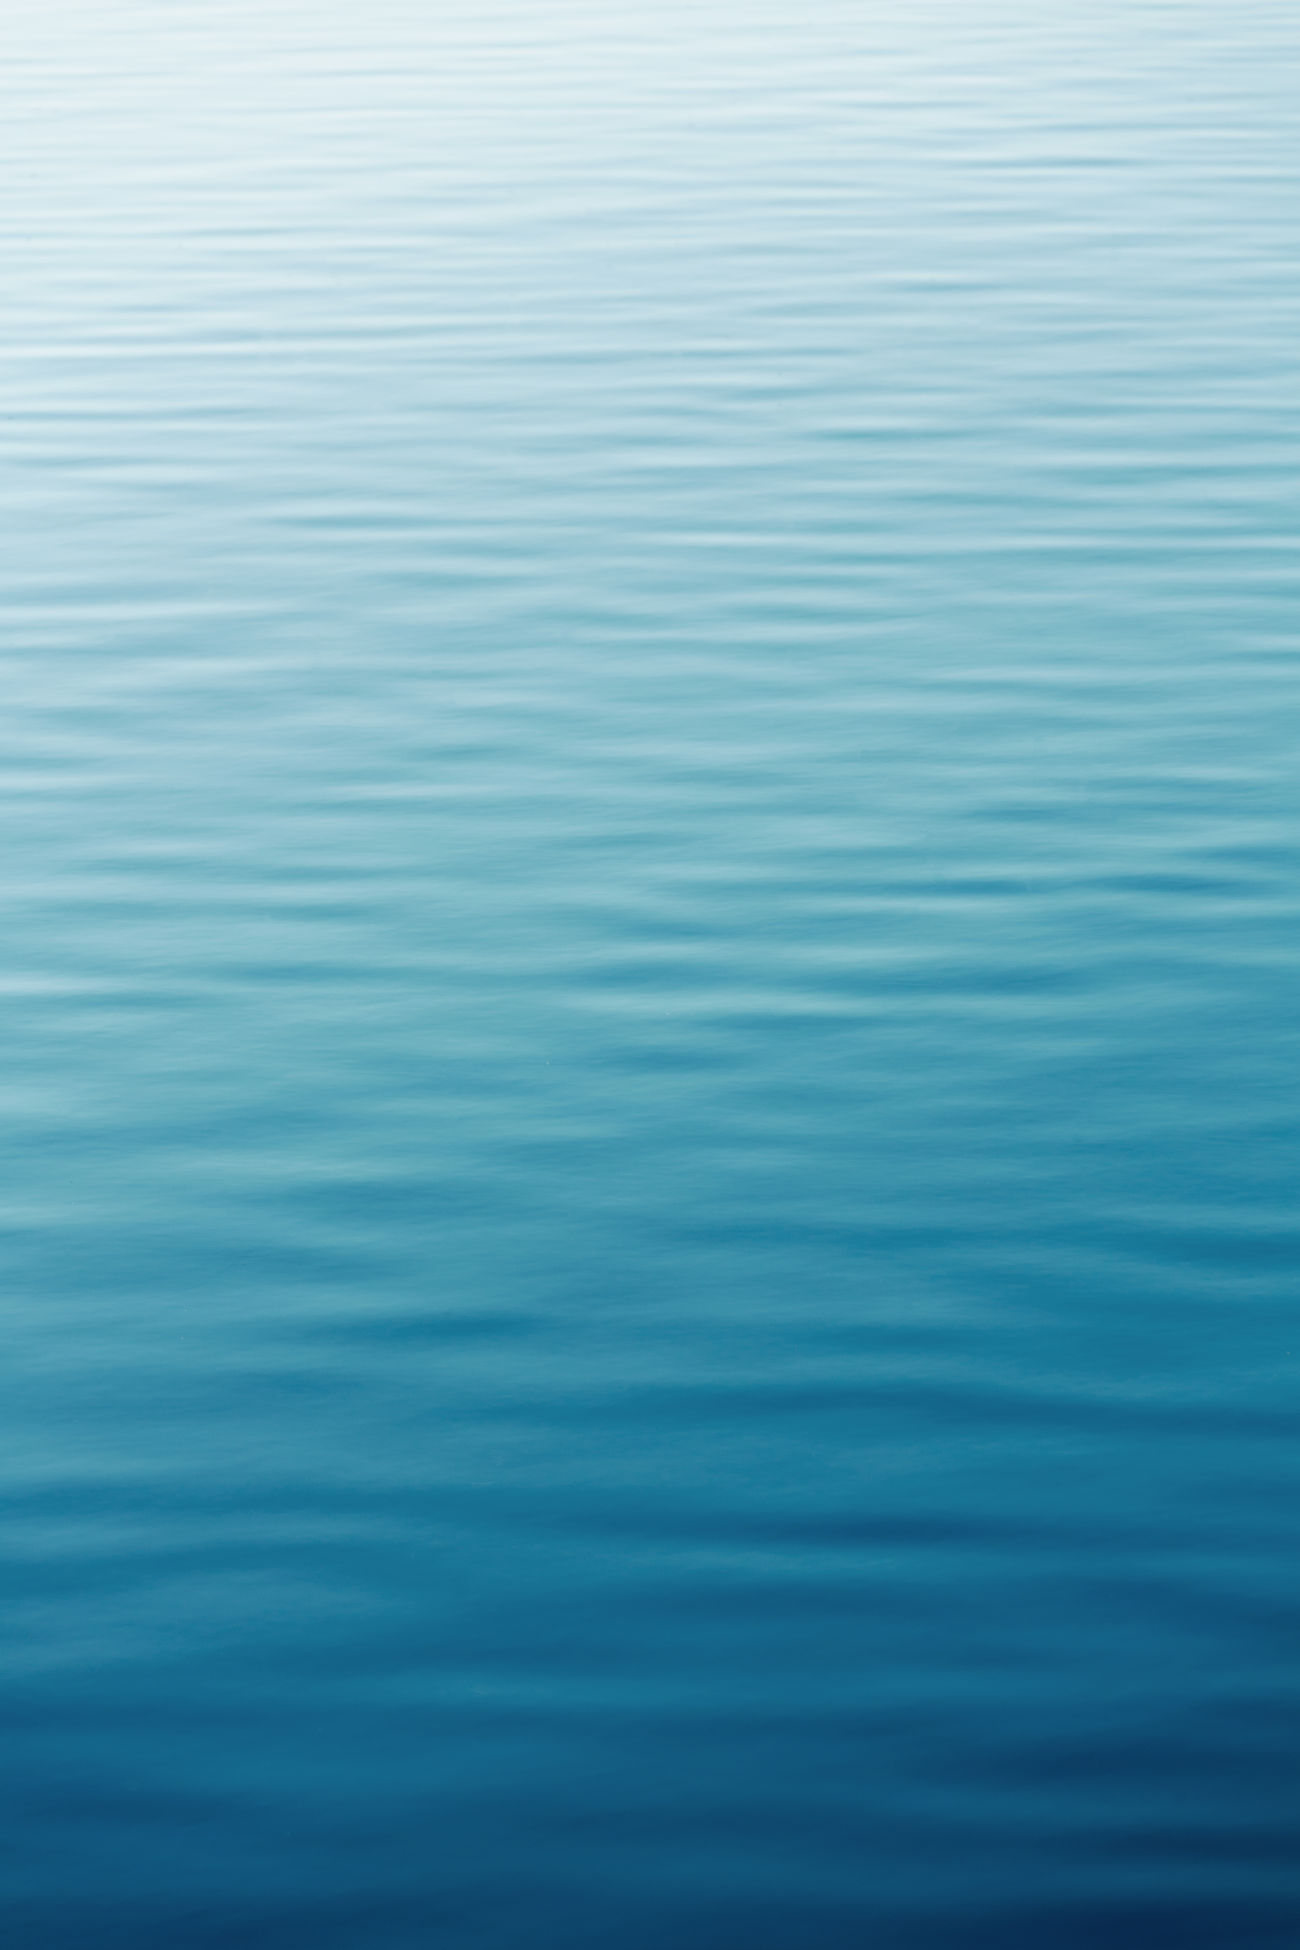 Silent surface of blue water Reflection Sea Backgrounds Beauty In Nature Blue Colorful Day Lake Nature Nature No People Outdoors Reflection Rippled Rippled Water Sea Sea View Silence Silence Of Nature Silent Moment Textured  Water Water Waves